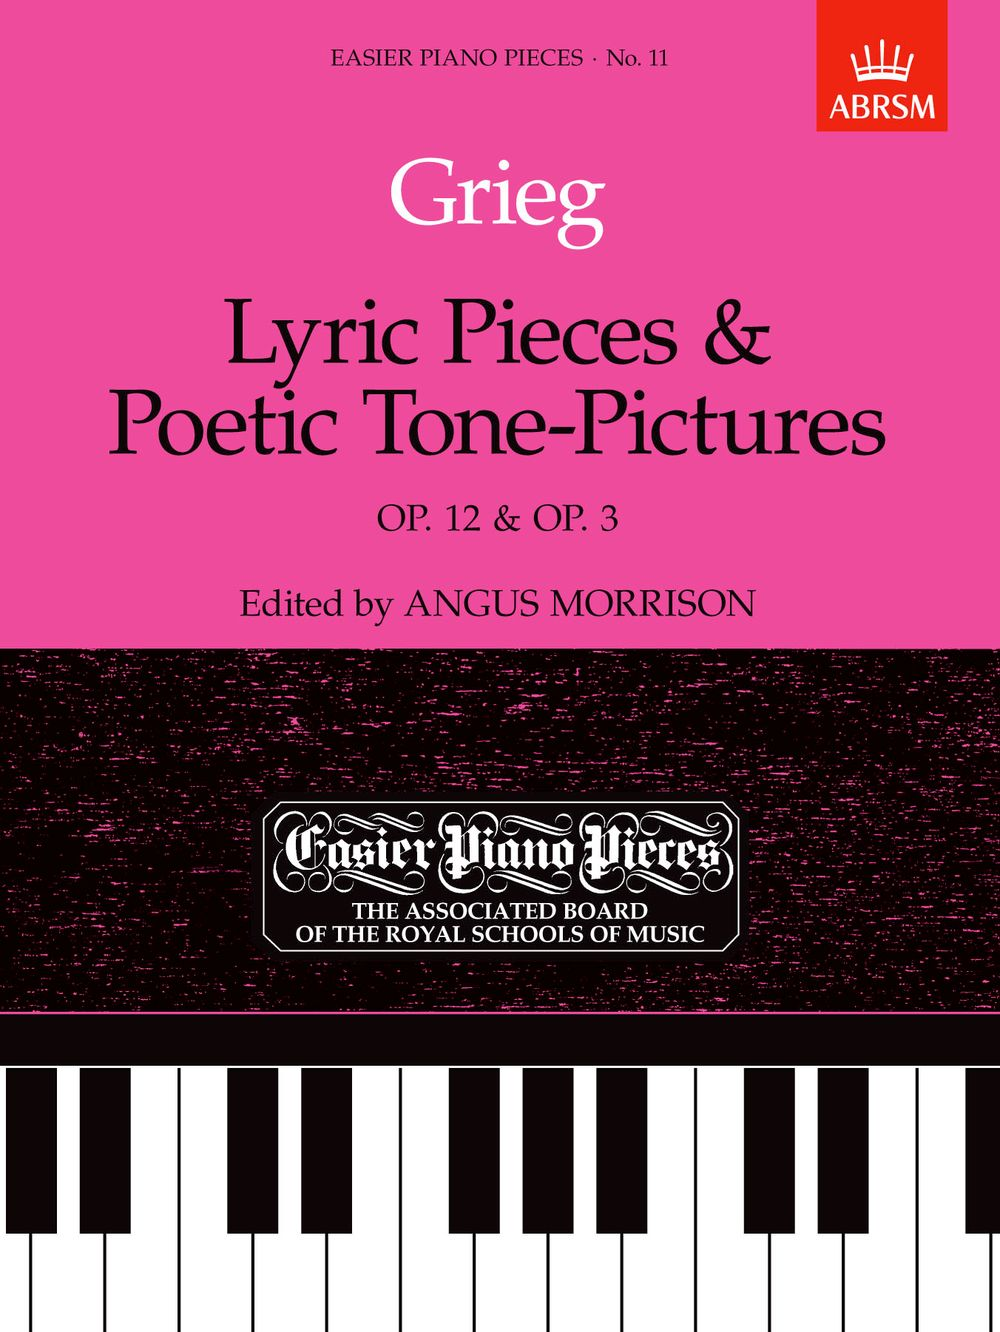 Edvard Grieg: Lyric Pieces And Poetic Tone-Pictures Op.12/Op.3: Piano: